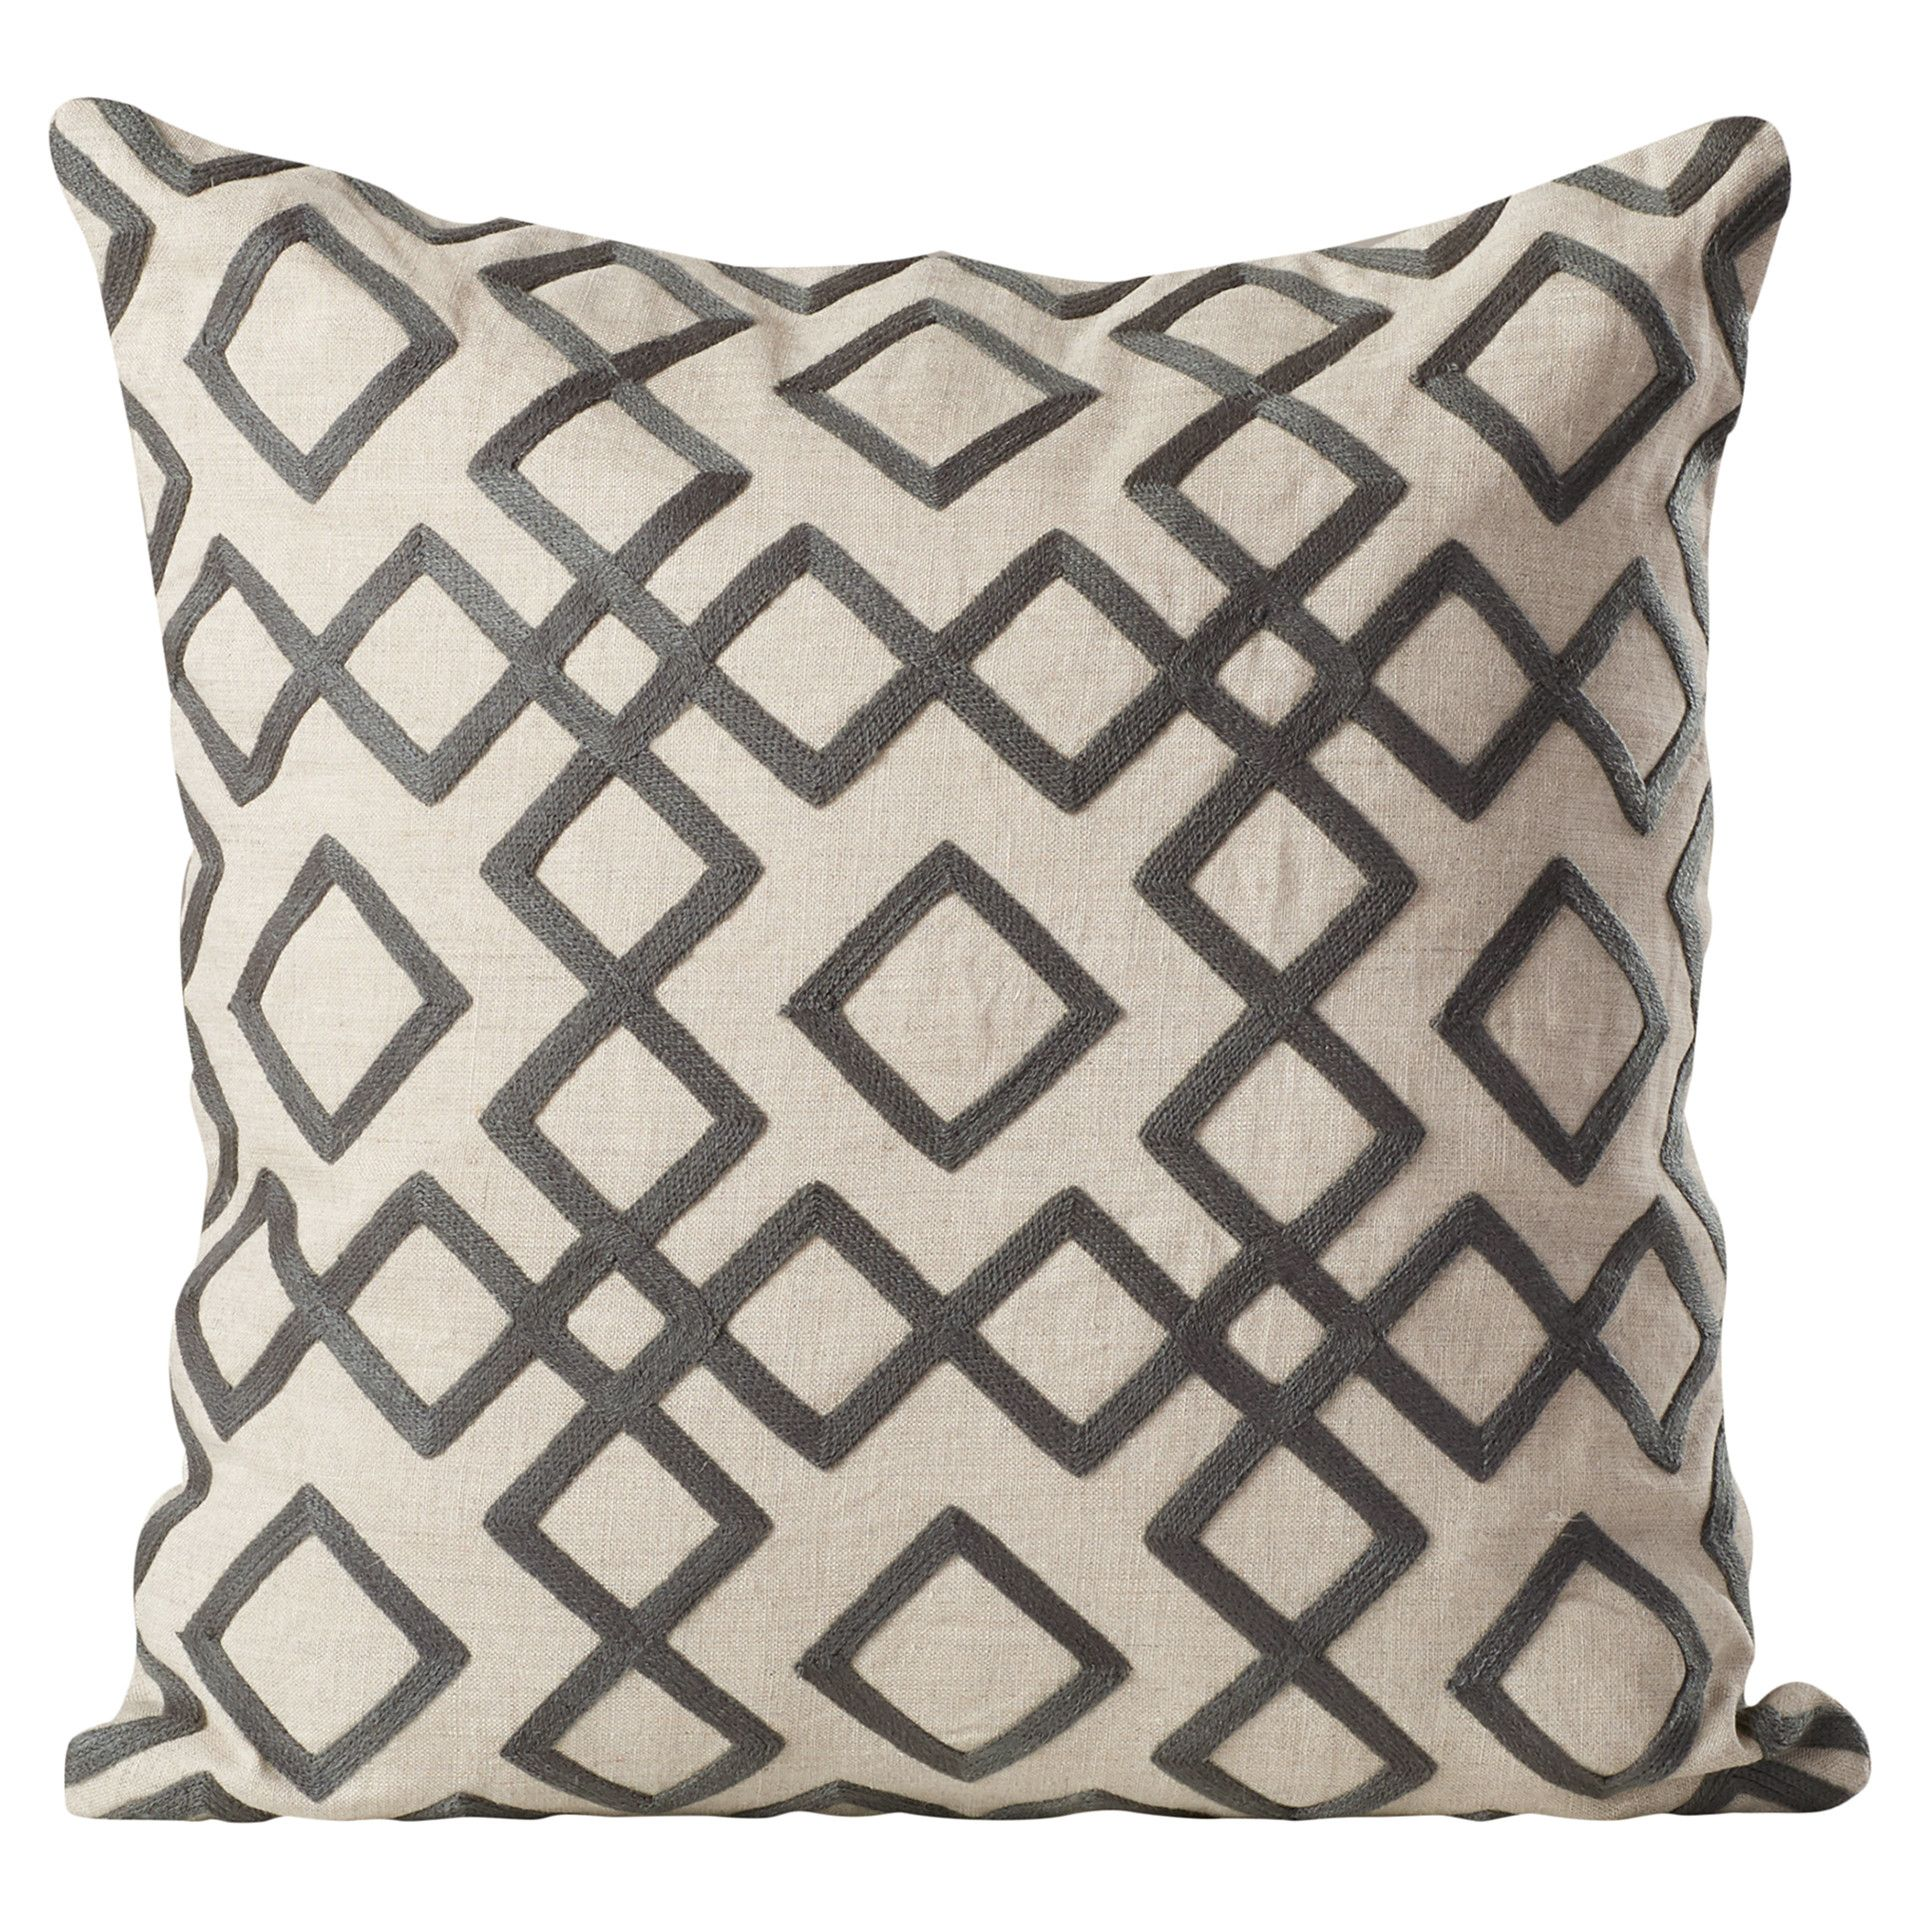 Youull love the luka diamond linen throw pillow at wayfair great